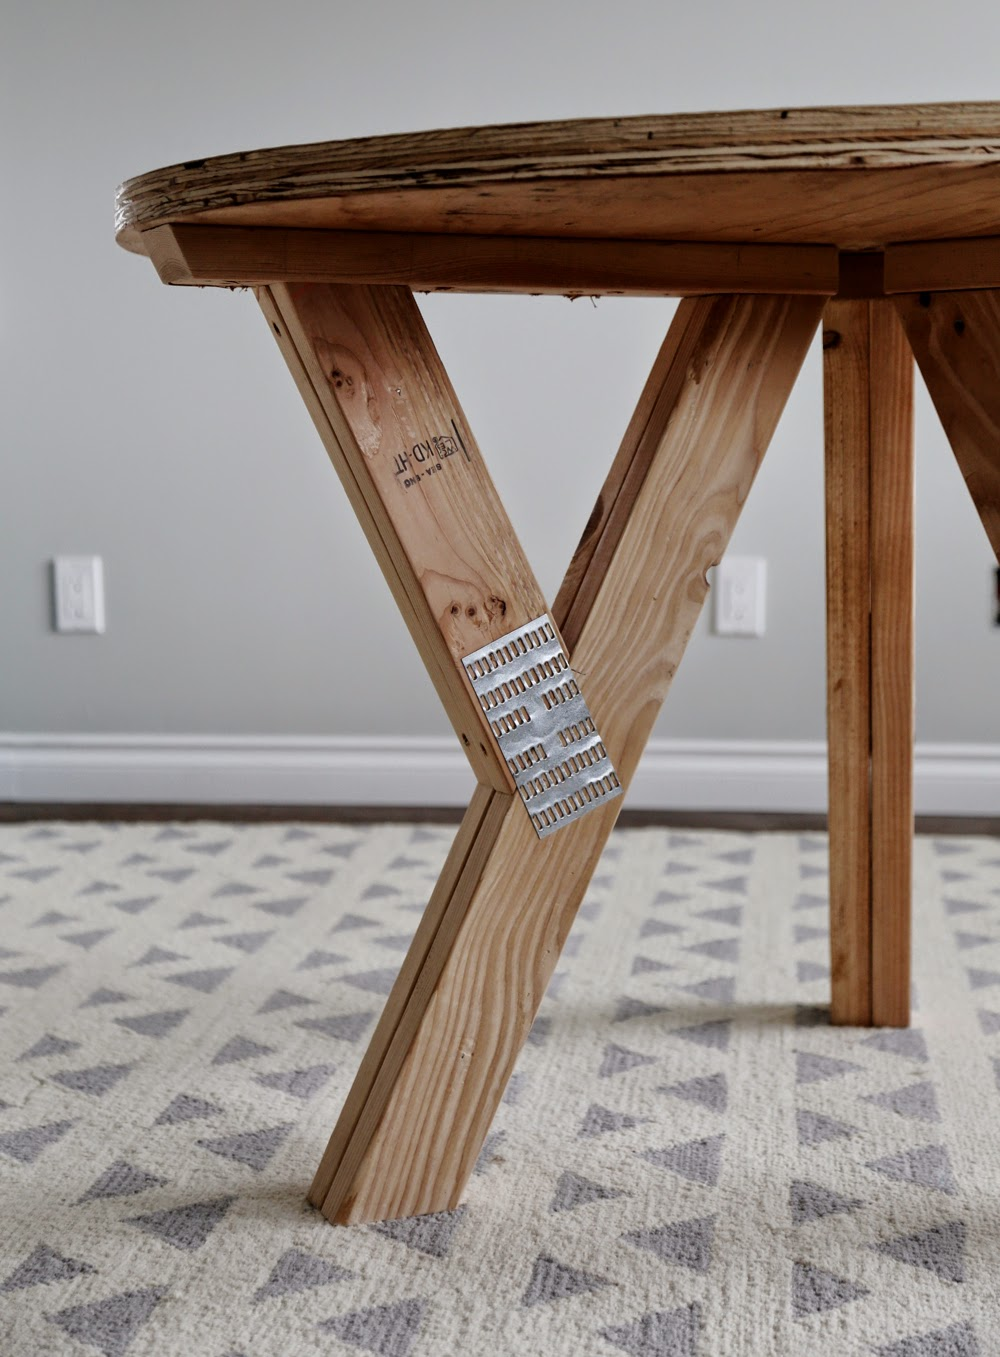 Ana white y truss round table diy projects for Round table legs diy